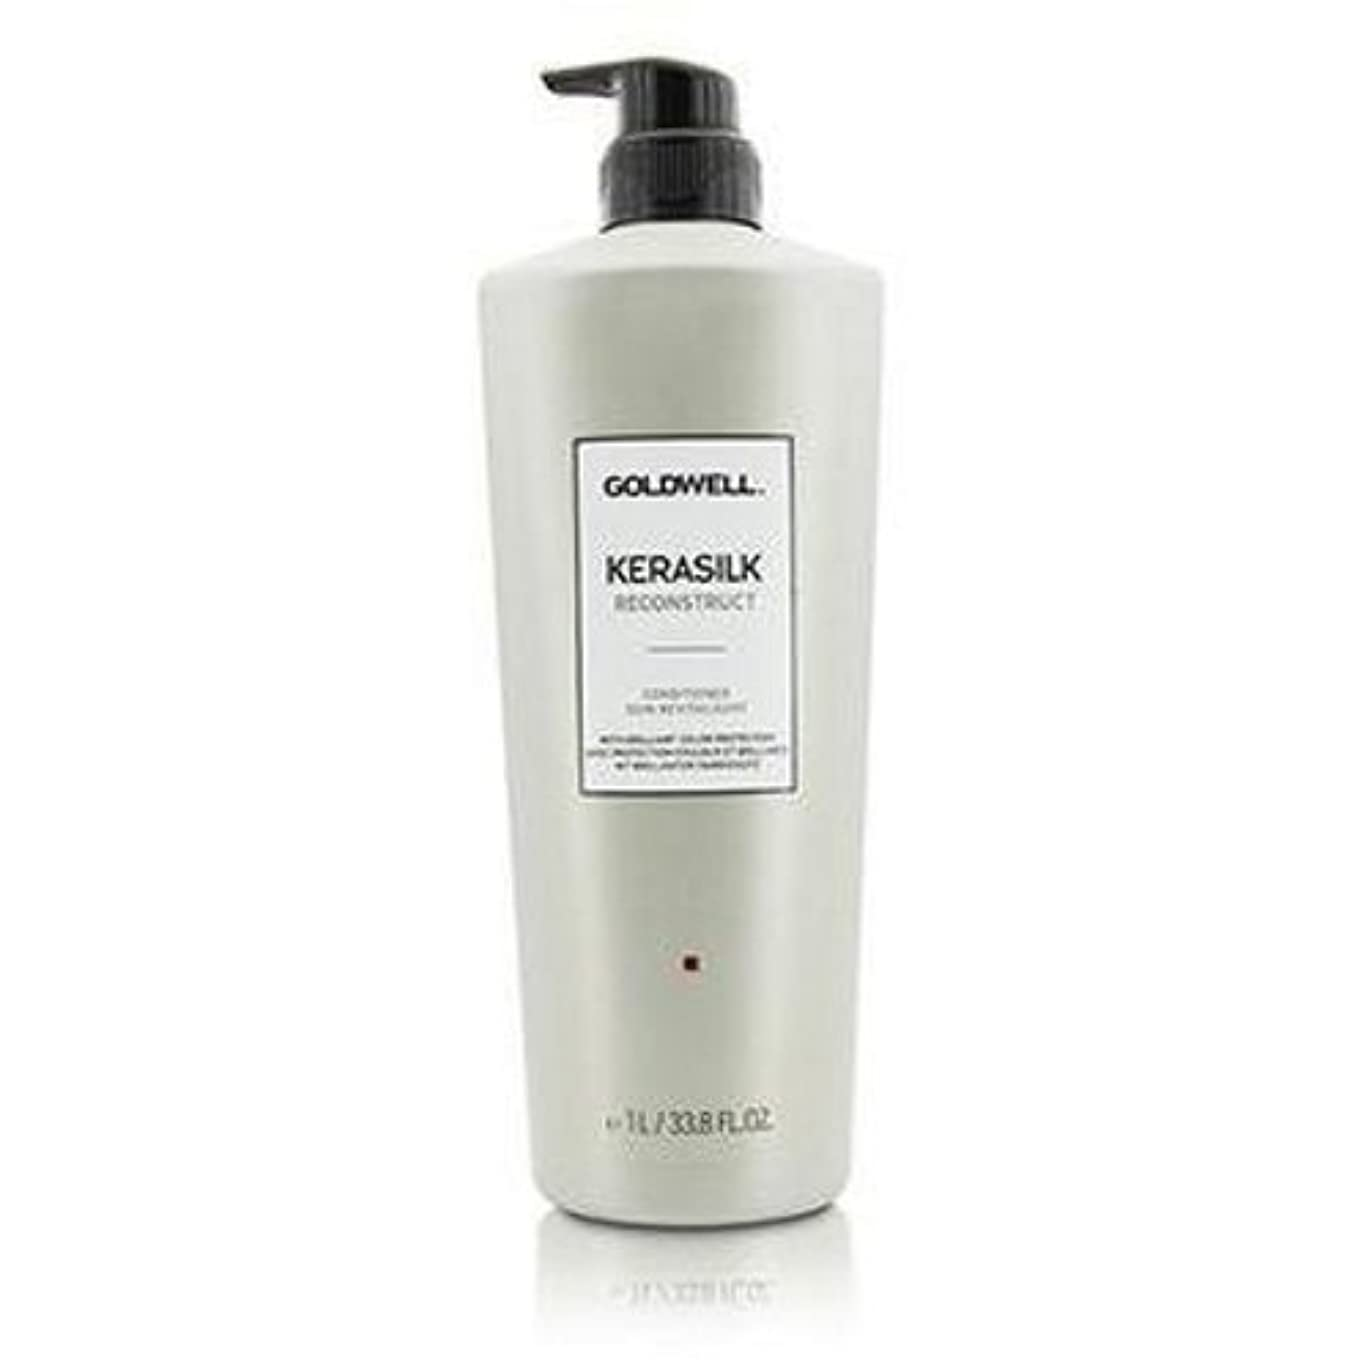 正しくどちらかフラスコゴールドウェル Kerasilk Reconstruct Conditioner (For Stressed and Damaged Hair) 1000ml